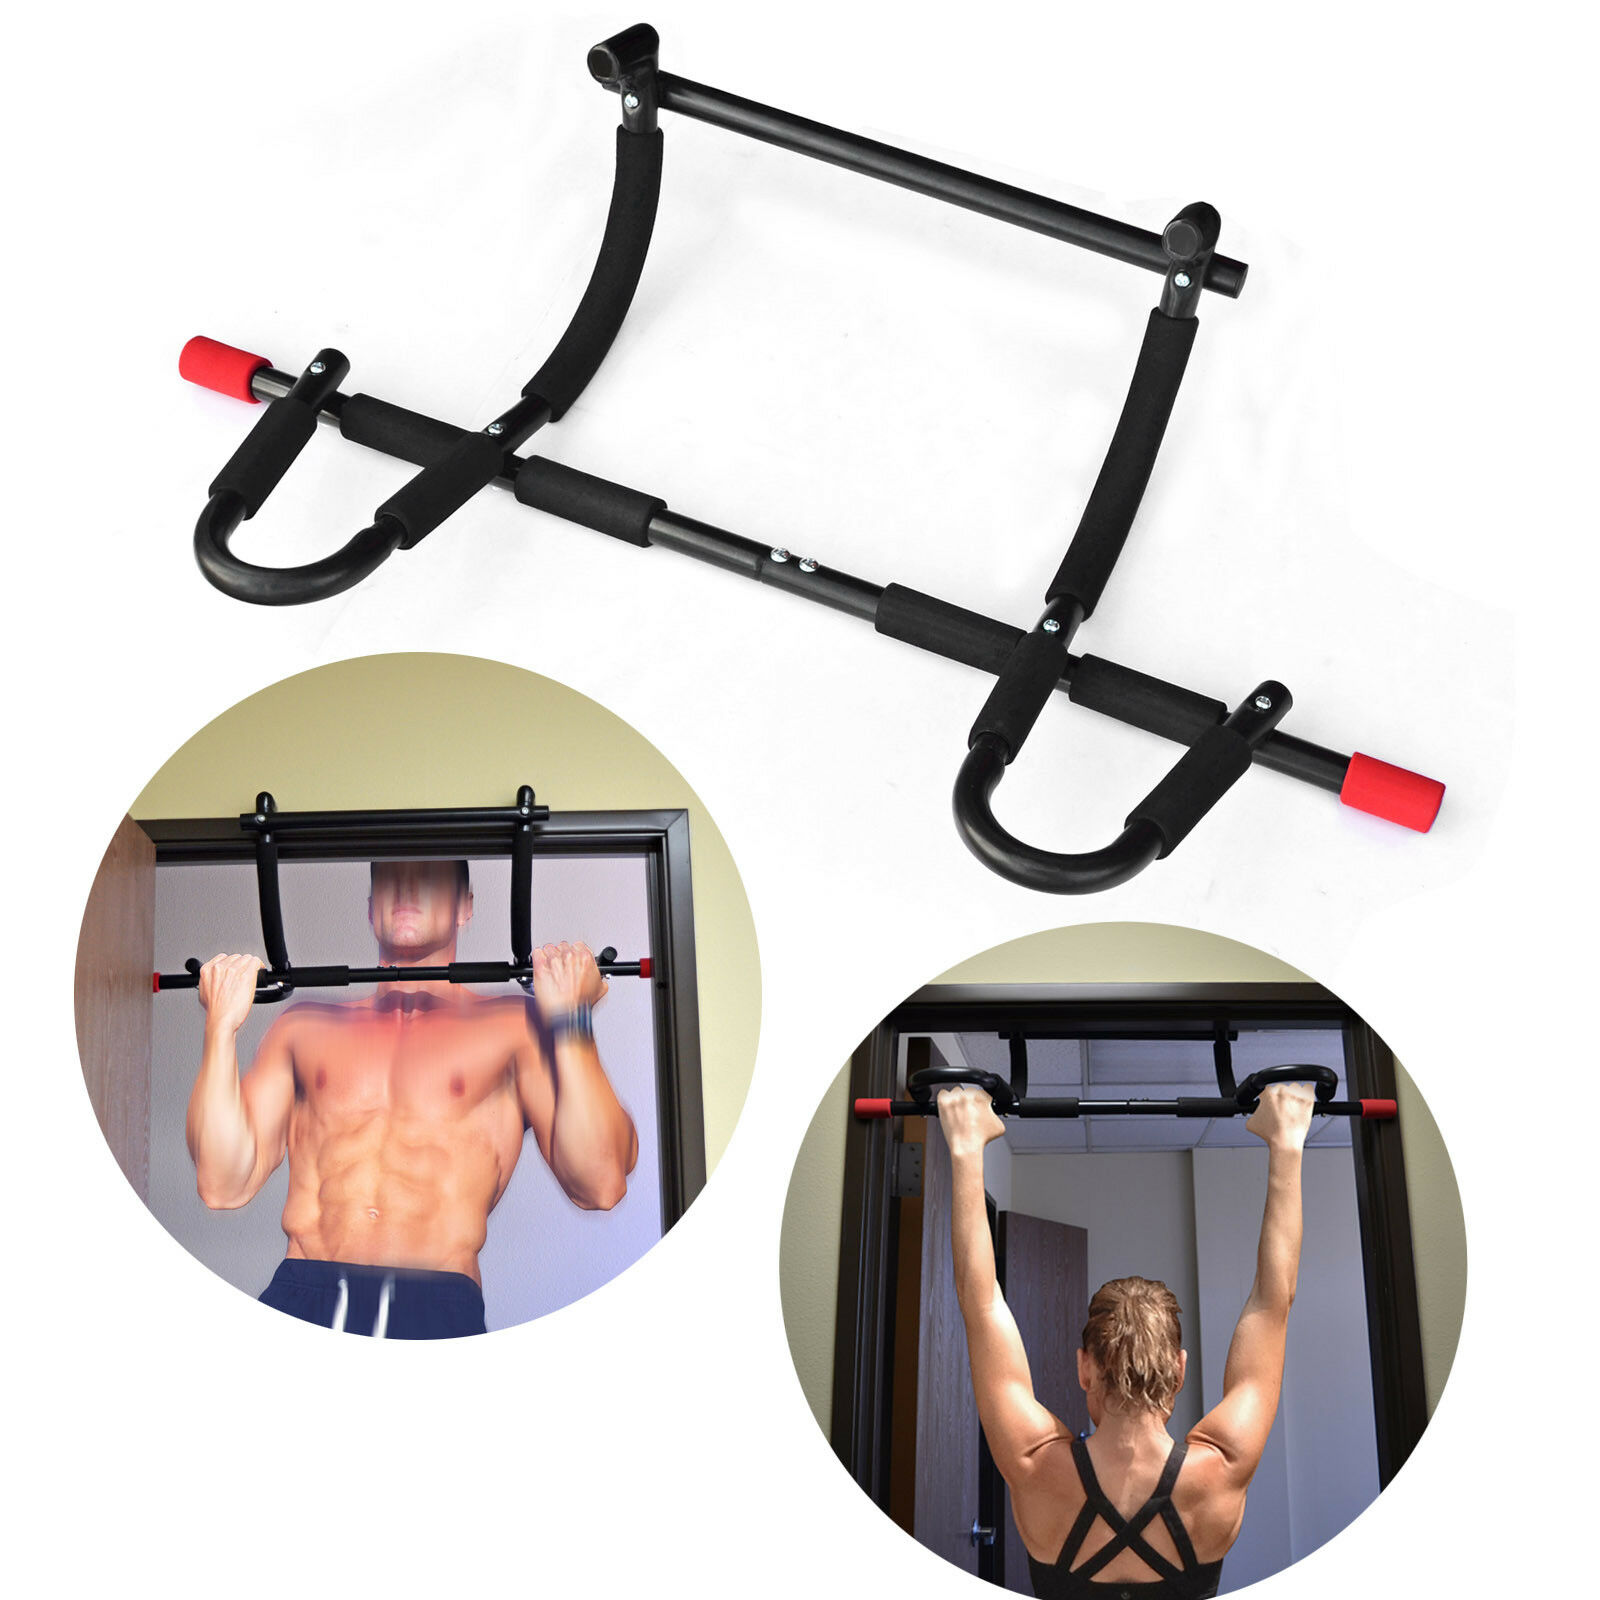 Pull Up Bar Mounted Doorway Extreme Home Gym Fitness Workout Heavy Duty